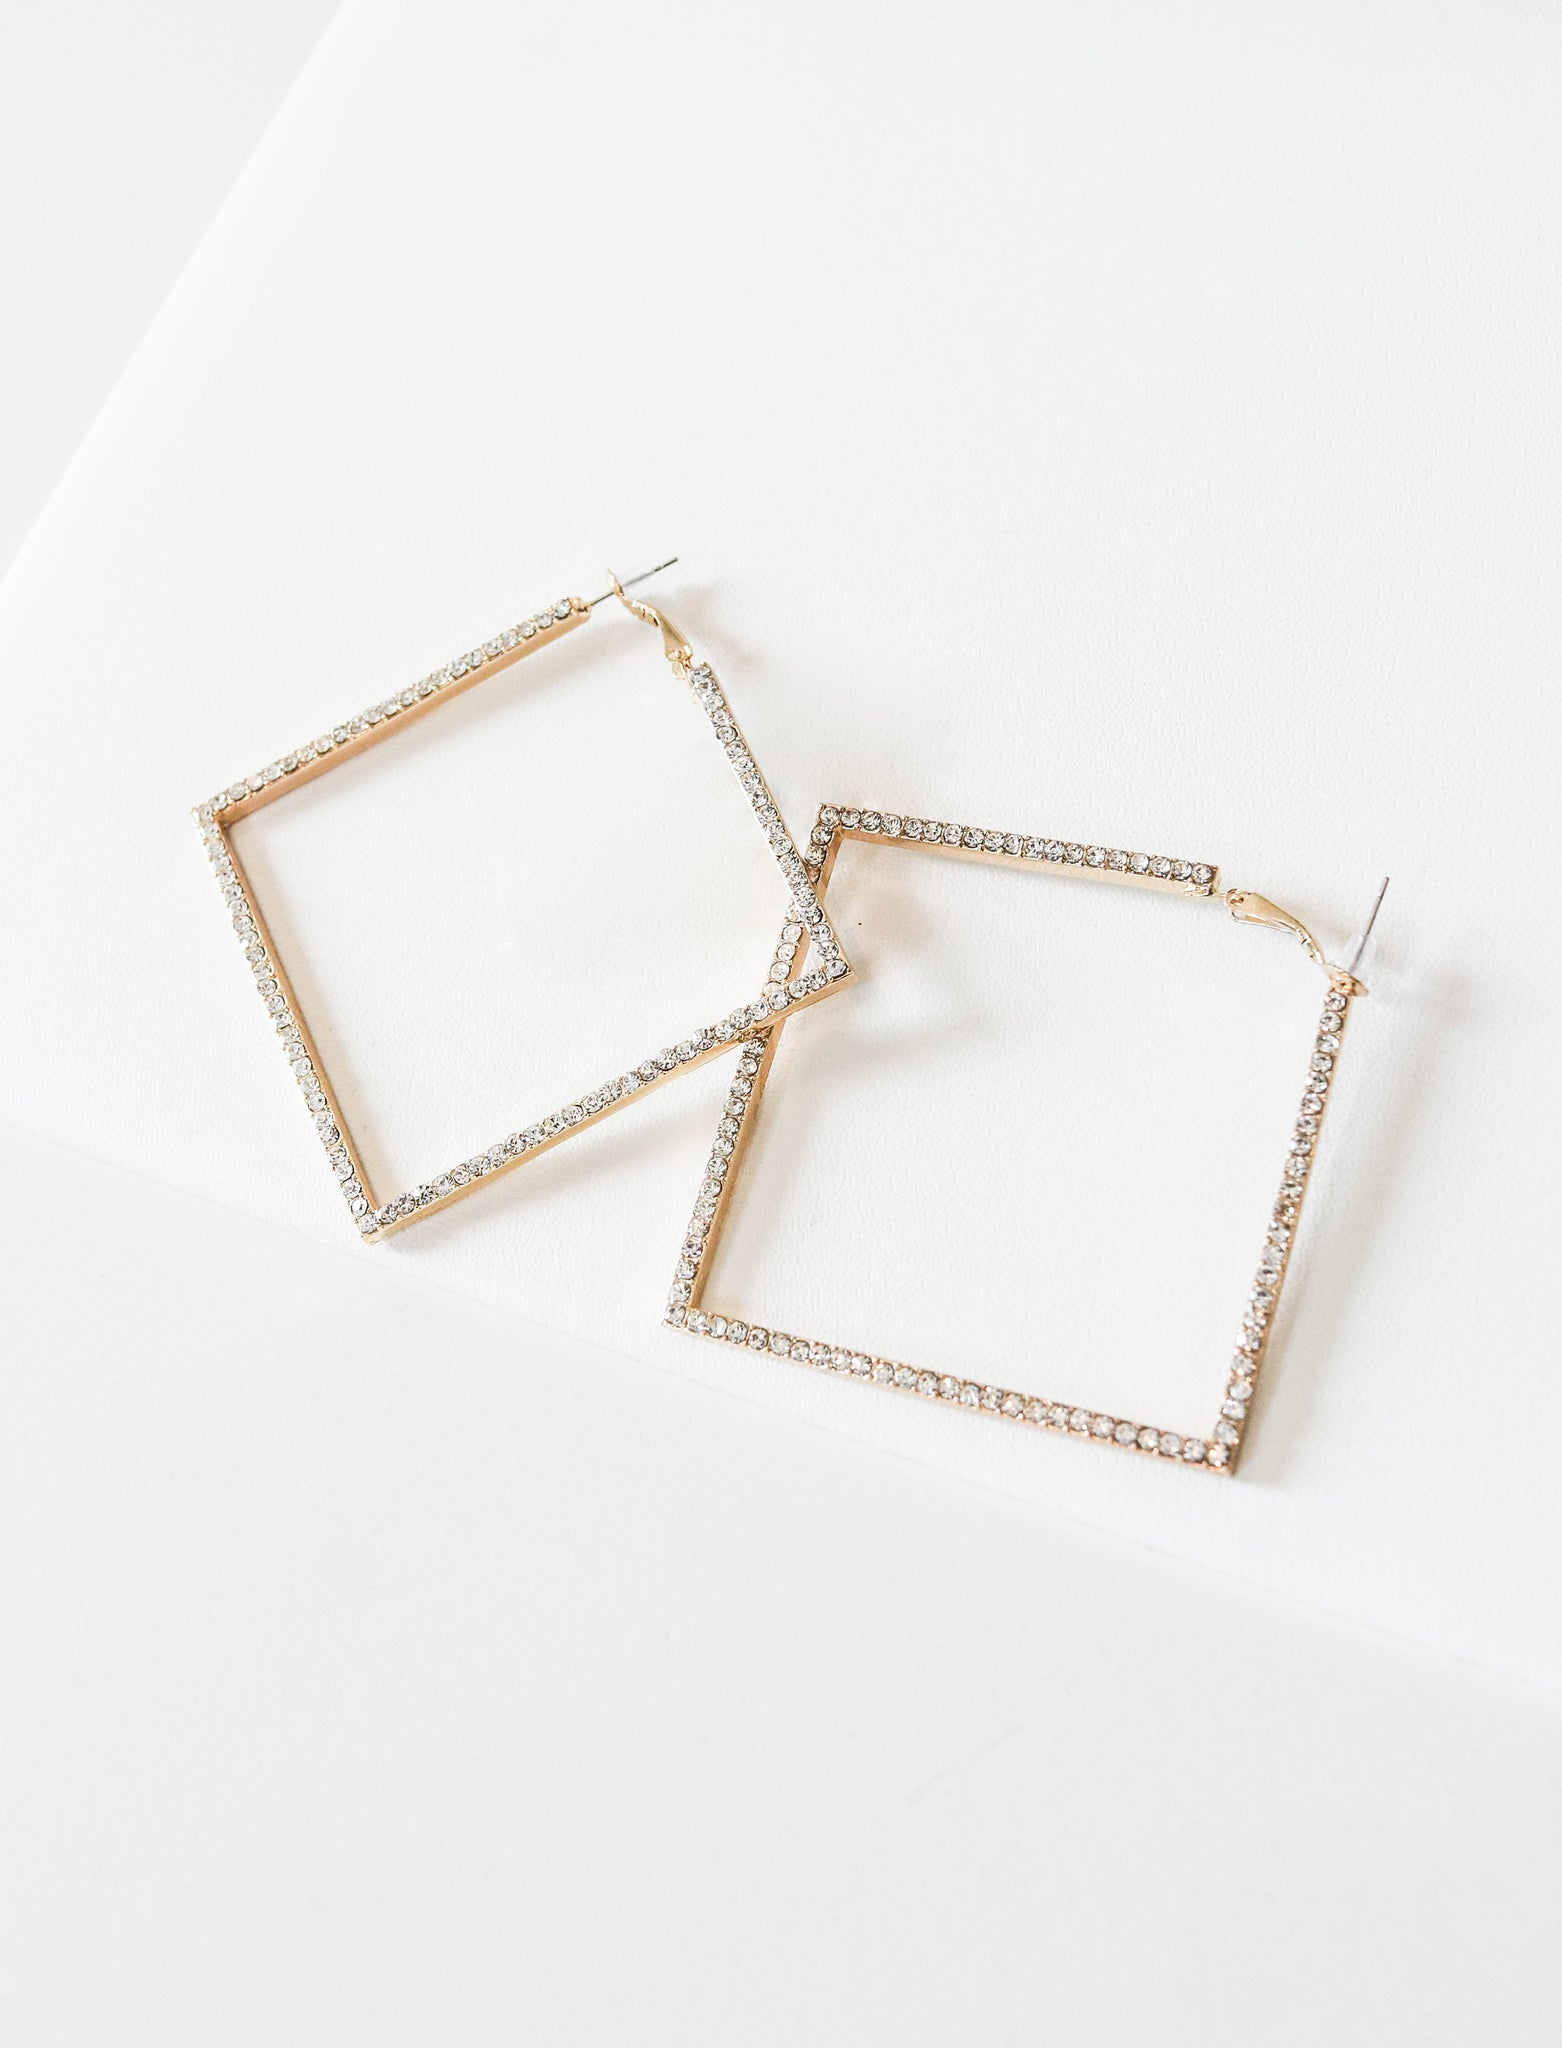 Jessica Square Hoop Earrings